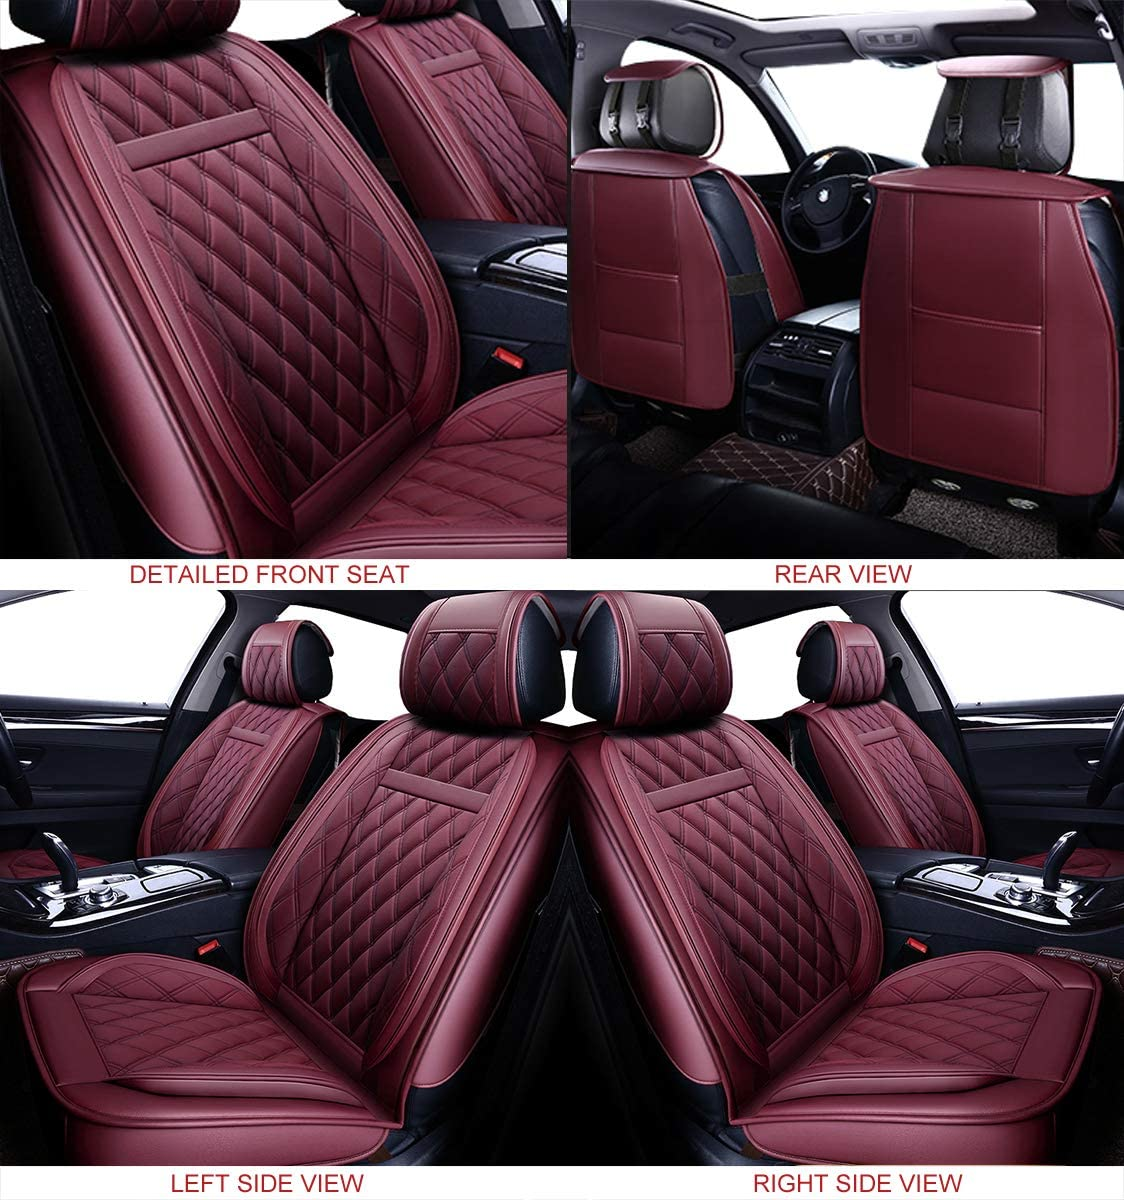 Full Set, Brown OASIS AUTO OS-001 Leather Car Seat Covers Faux Leatherette Automotive Vehicle Cushion Cover for Cars SUV Pick-up Truck Universal Fit Set for Auto Interior Accessories